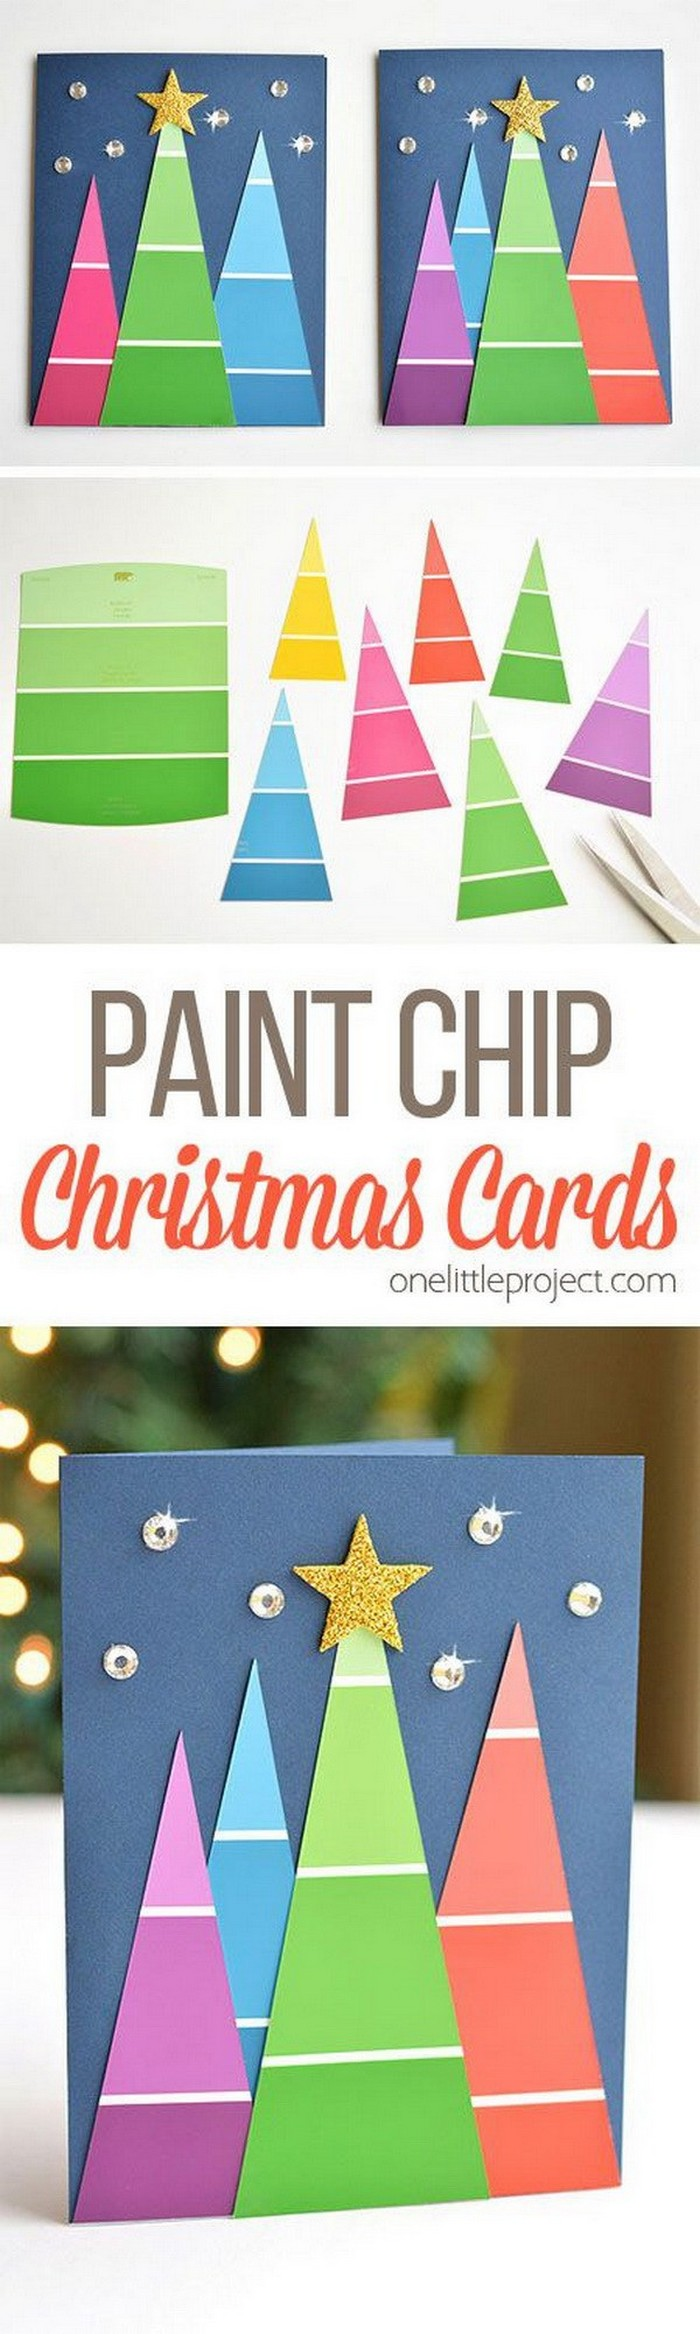 Paint Chip Christmas Cards - DIY Christmas crafts